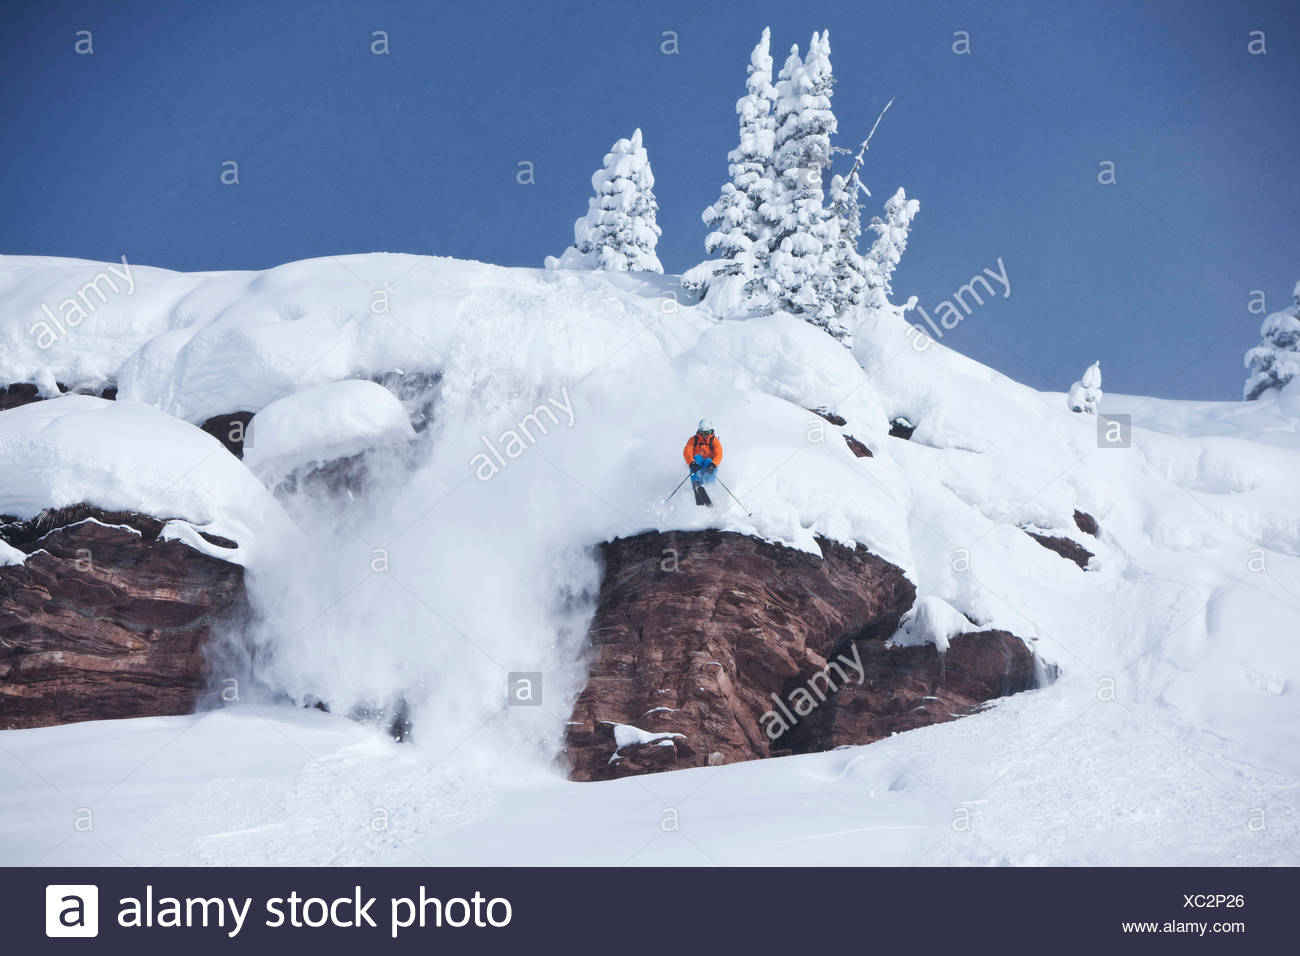 A athletic skier jumping off a cliff in the backcountry on a sunny powder day in Colorado. - Stock Image